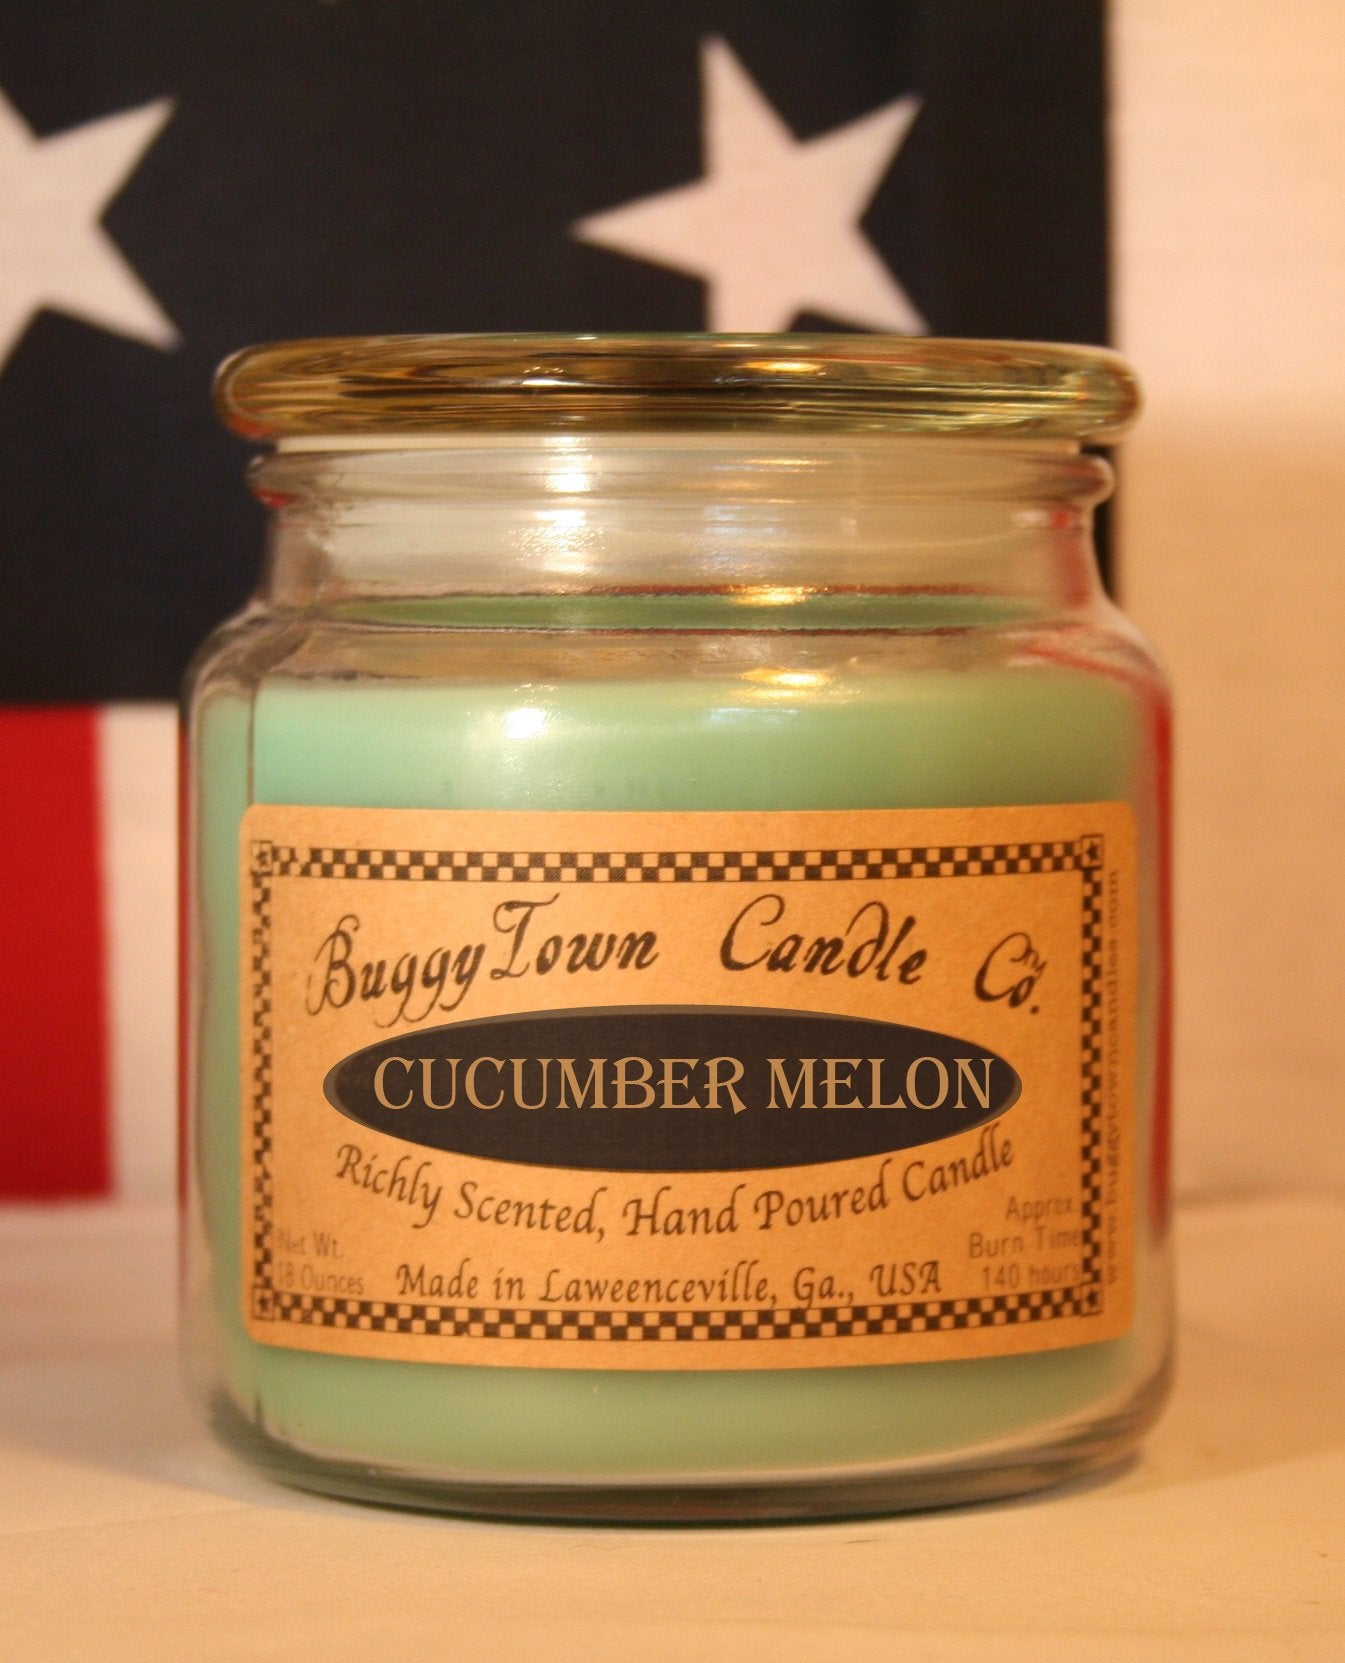 Cucumber Melon Candles